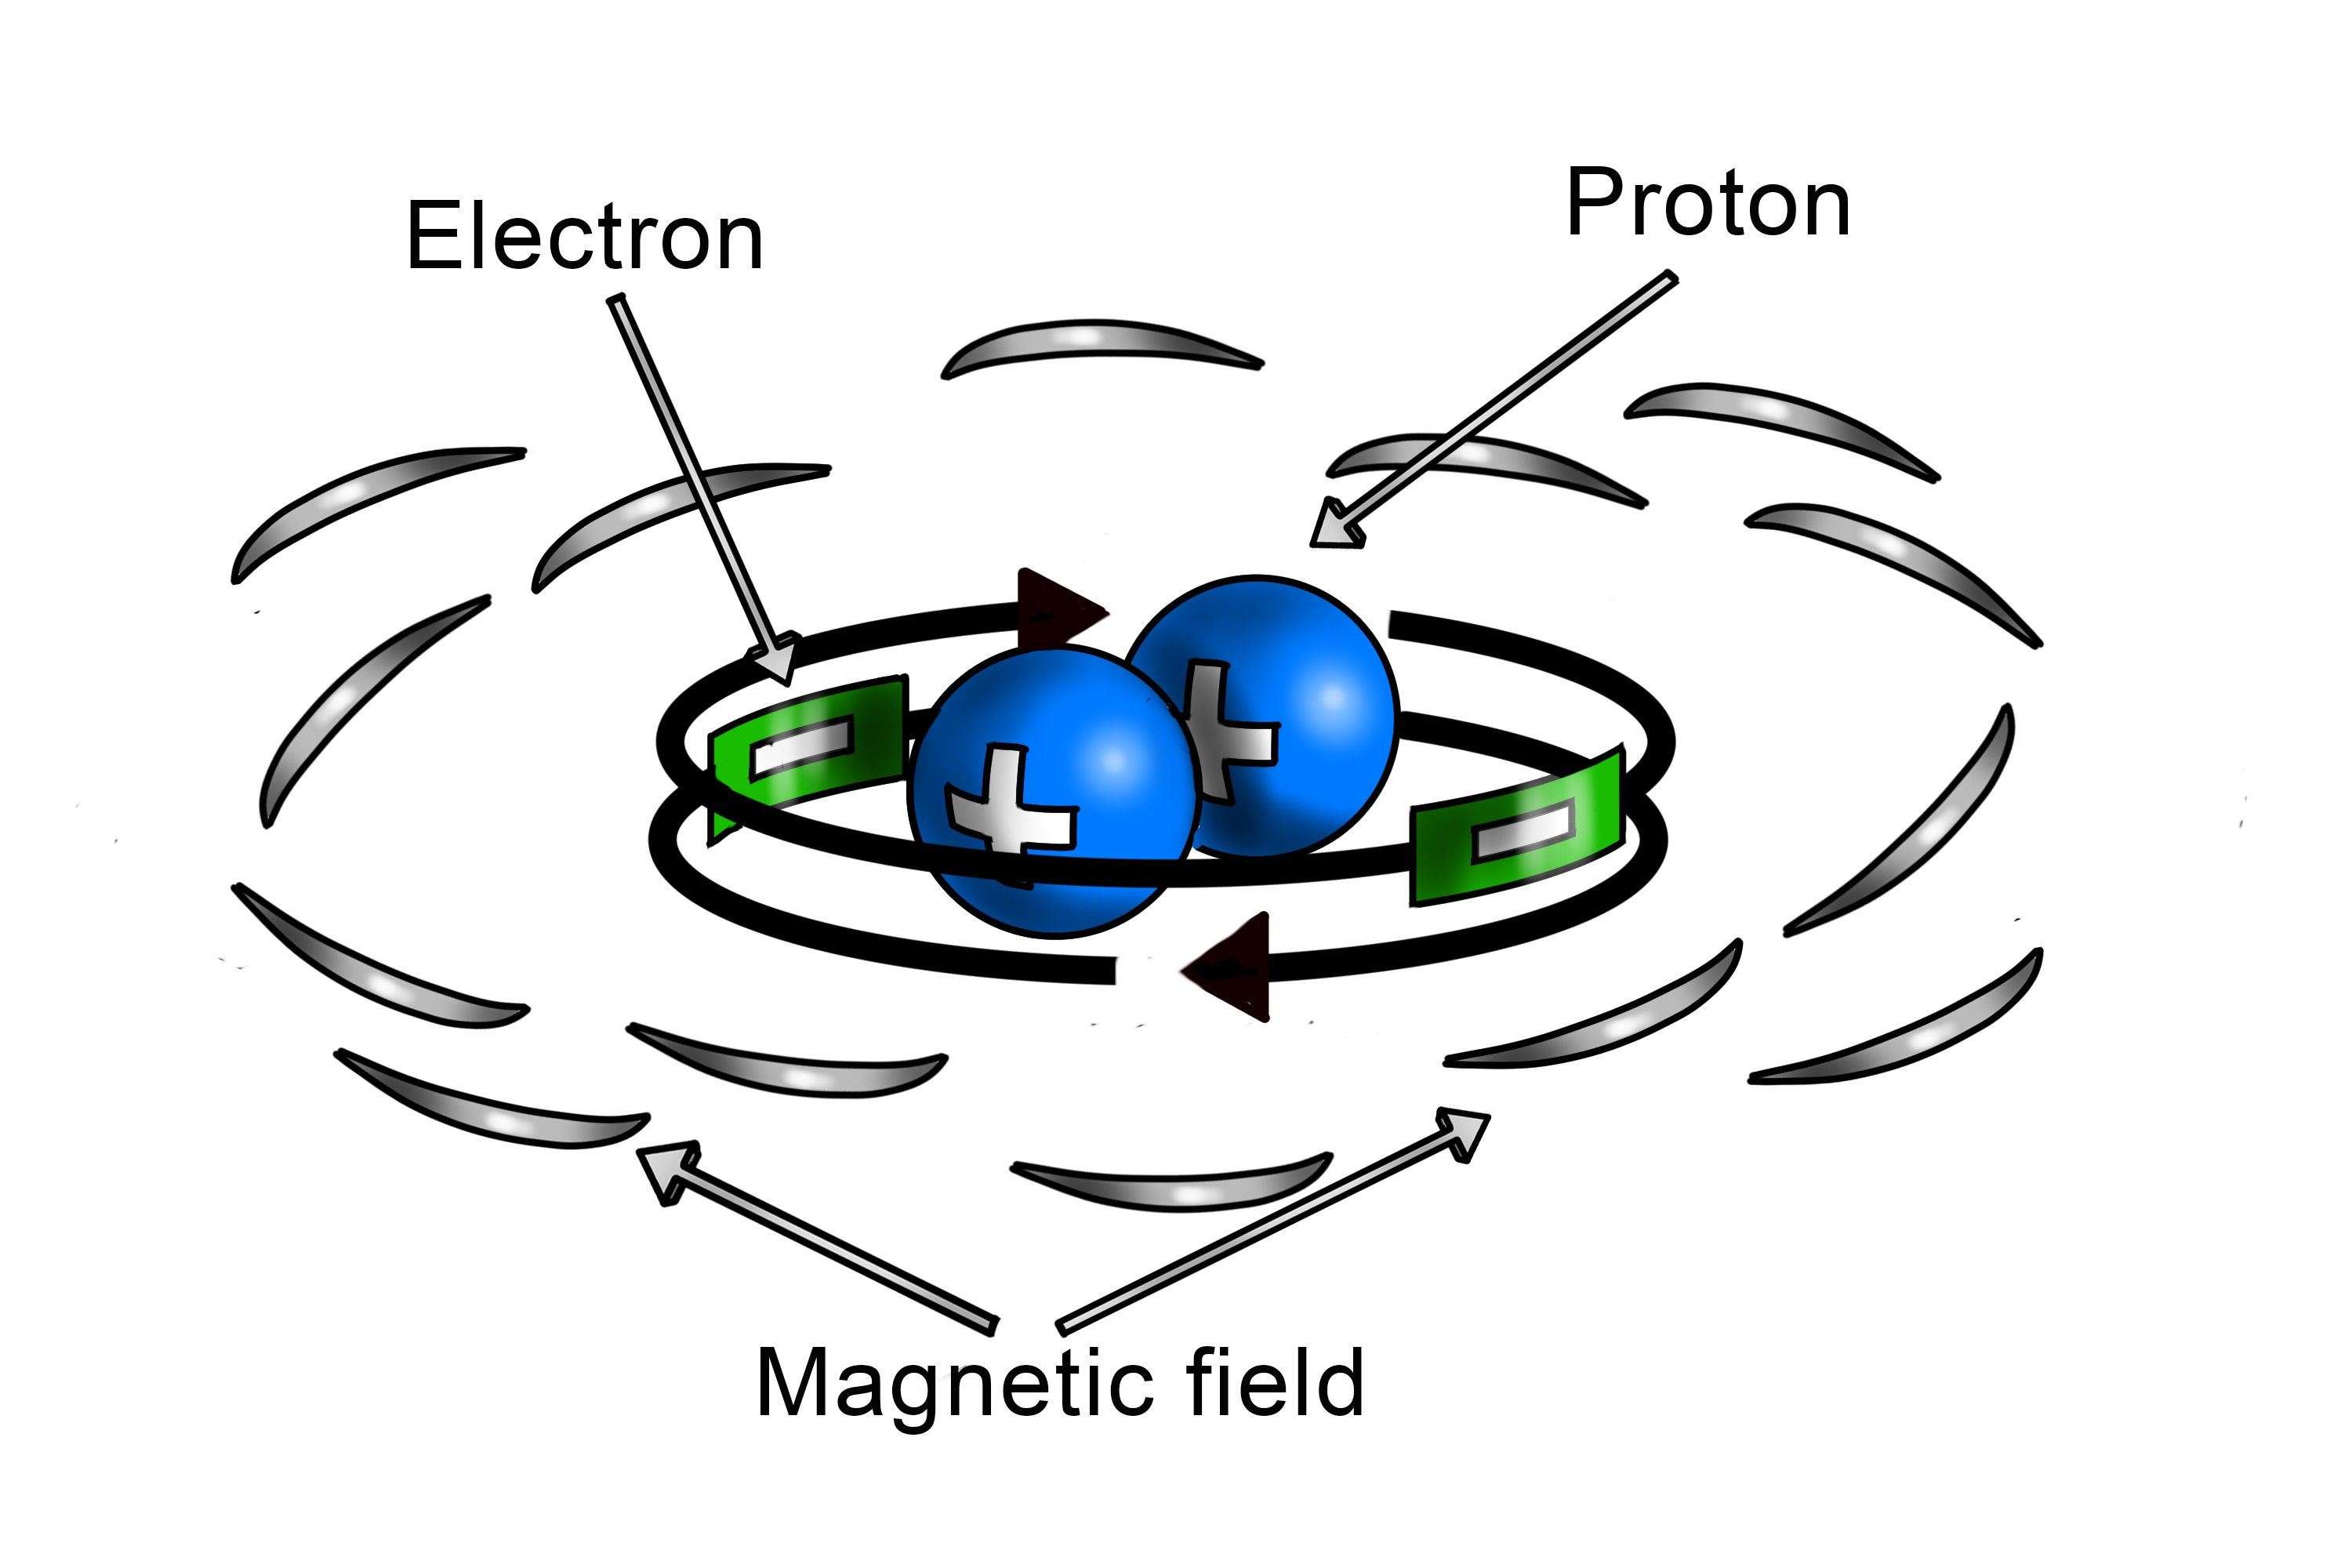 Electrons moving around protons with a magnetic field